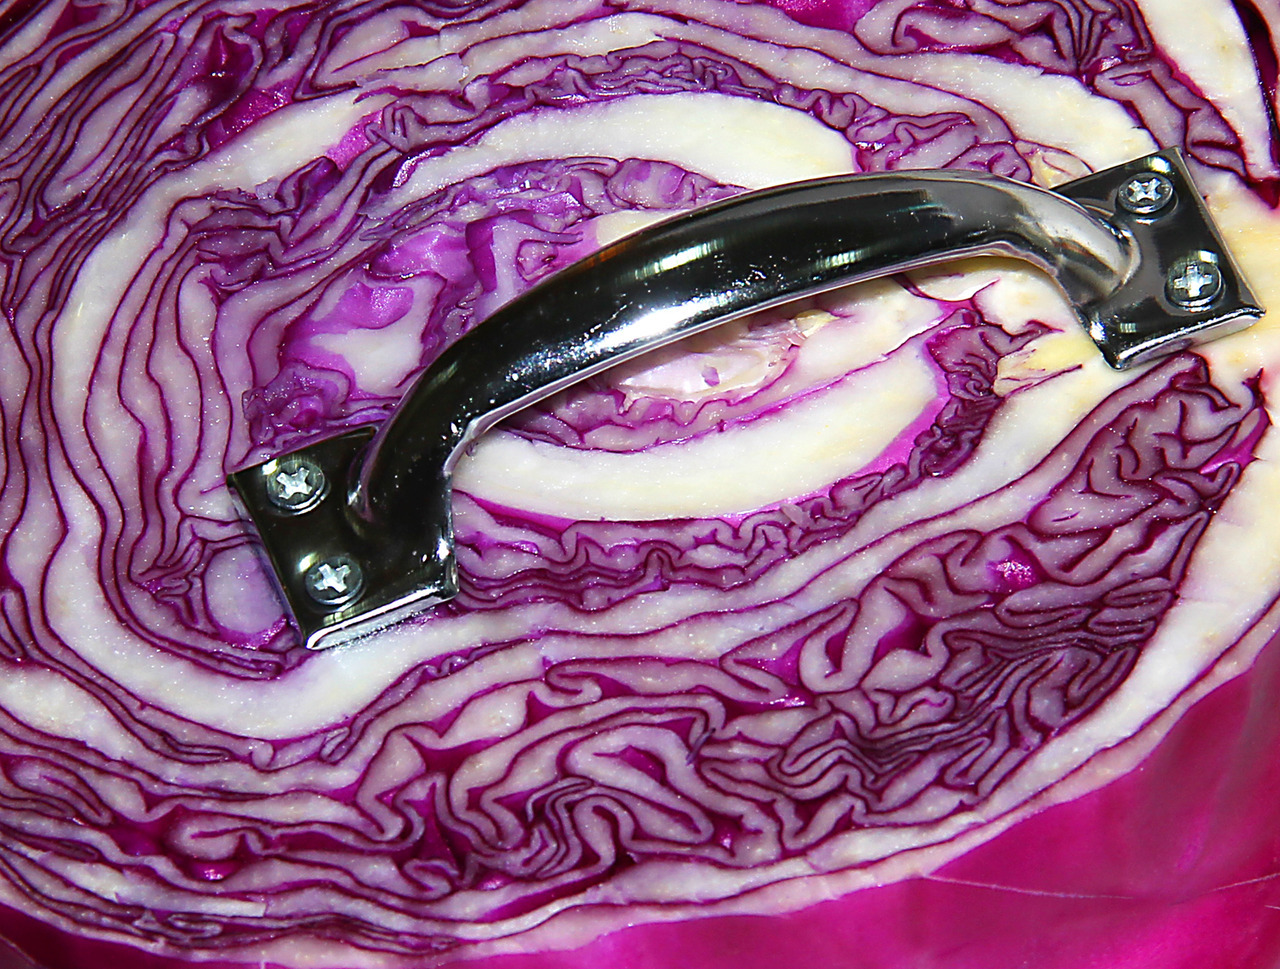 thejogging:  PURPLE CABBAGE with HANDLE (supportive of a wide array of opinions) Unique 1/1, 2012 •º• BUY IT ON ETSY NOW